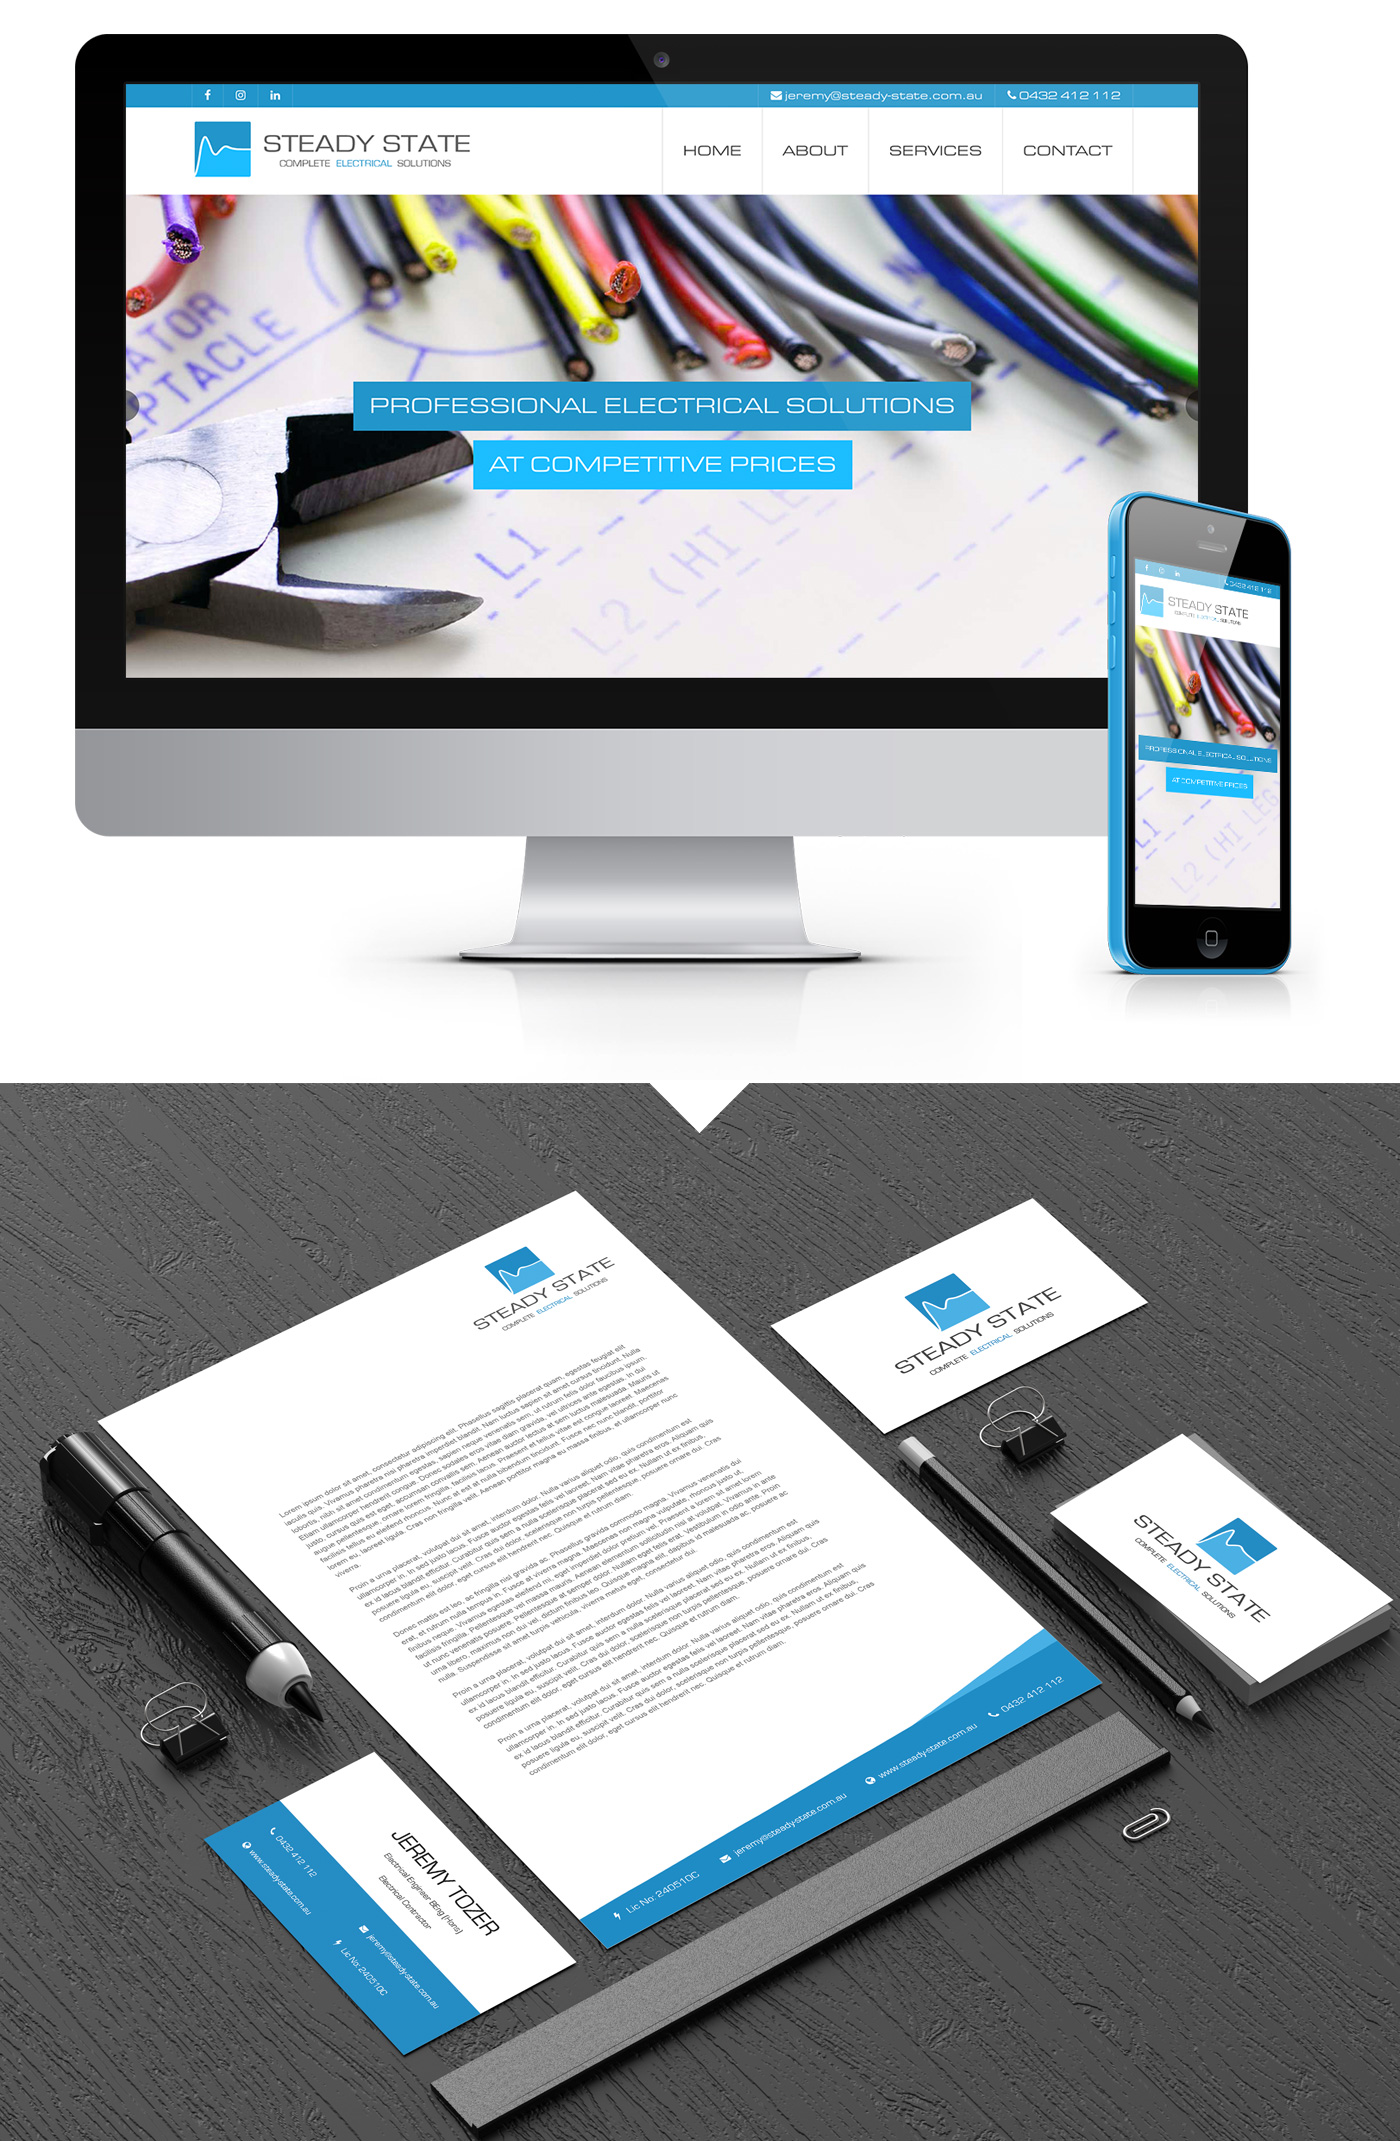 graphic-design-byron-bay-website-design-ballina-steady-state